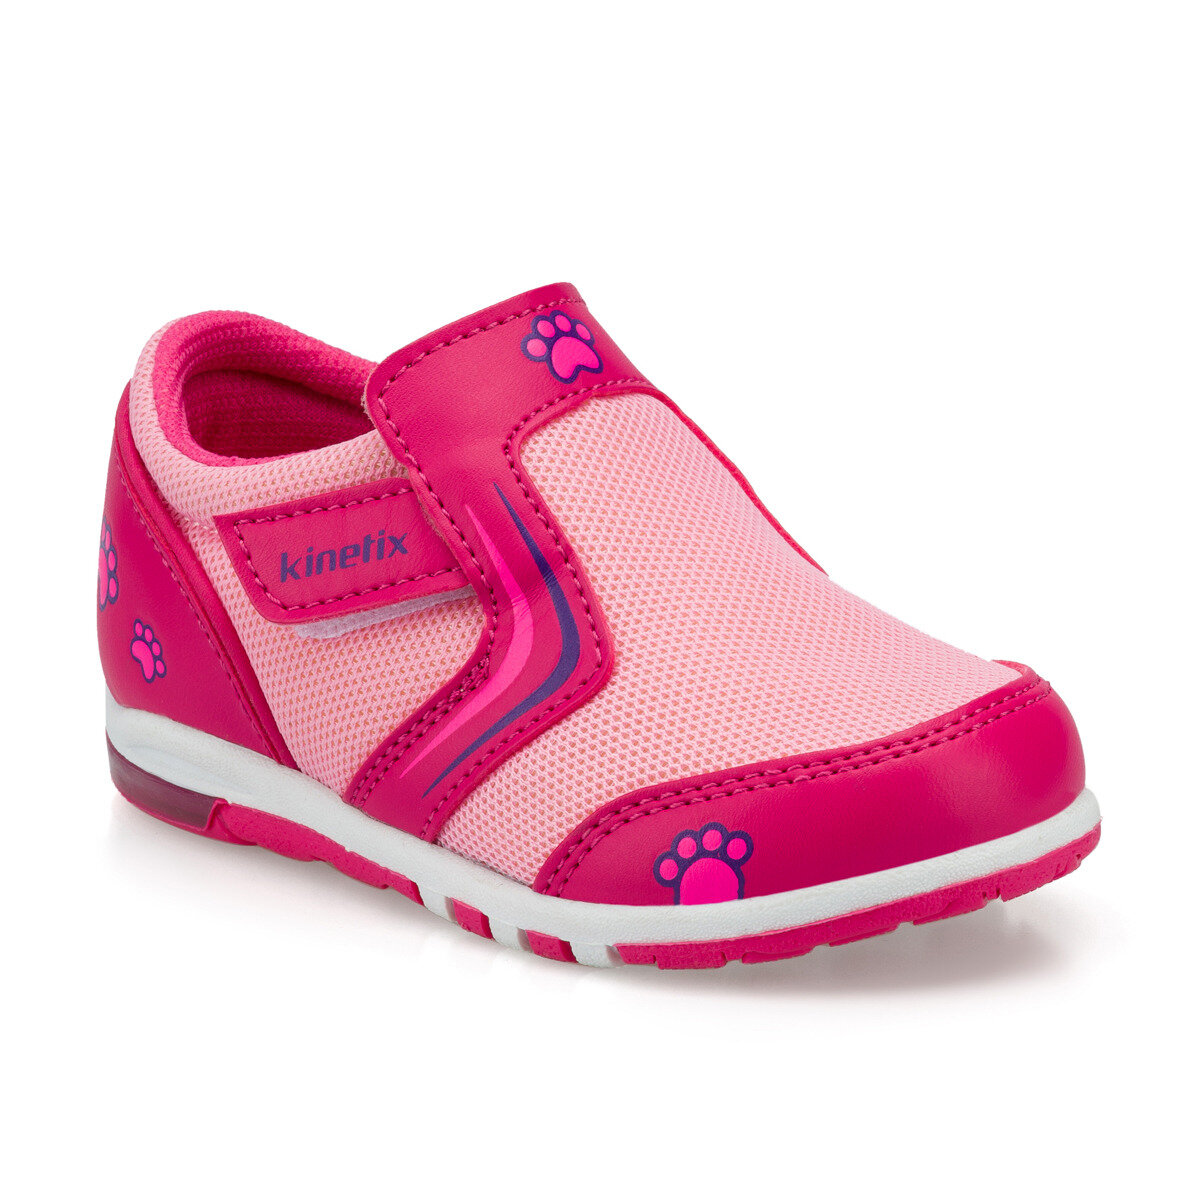 FLO KANTE Pink Female Child Walking Shoes KINETIX